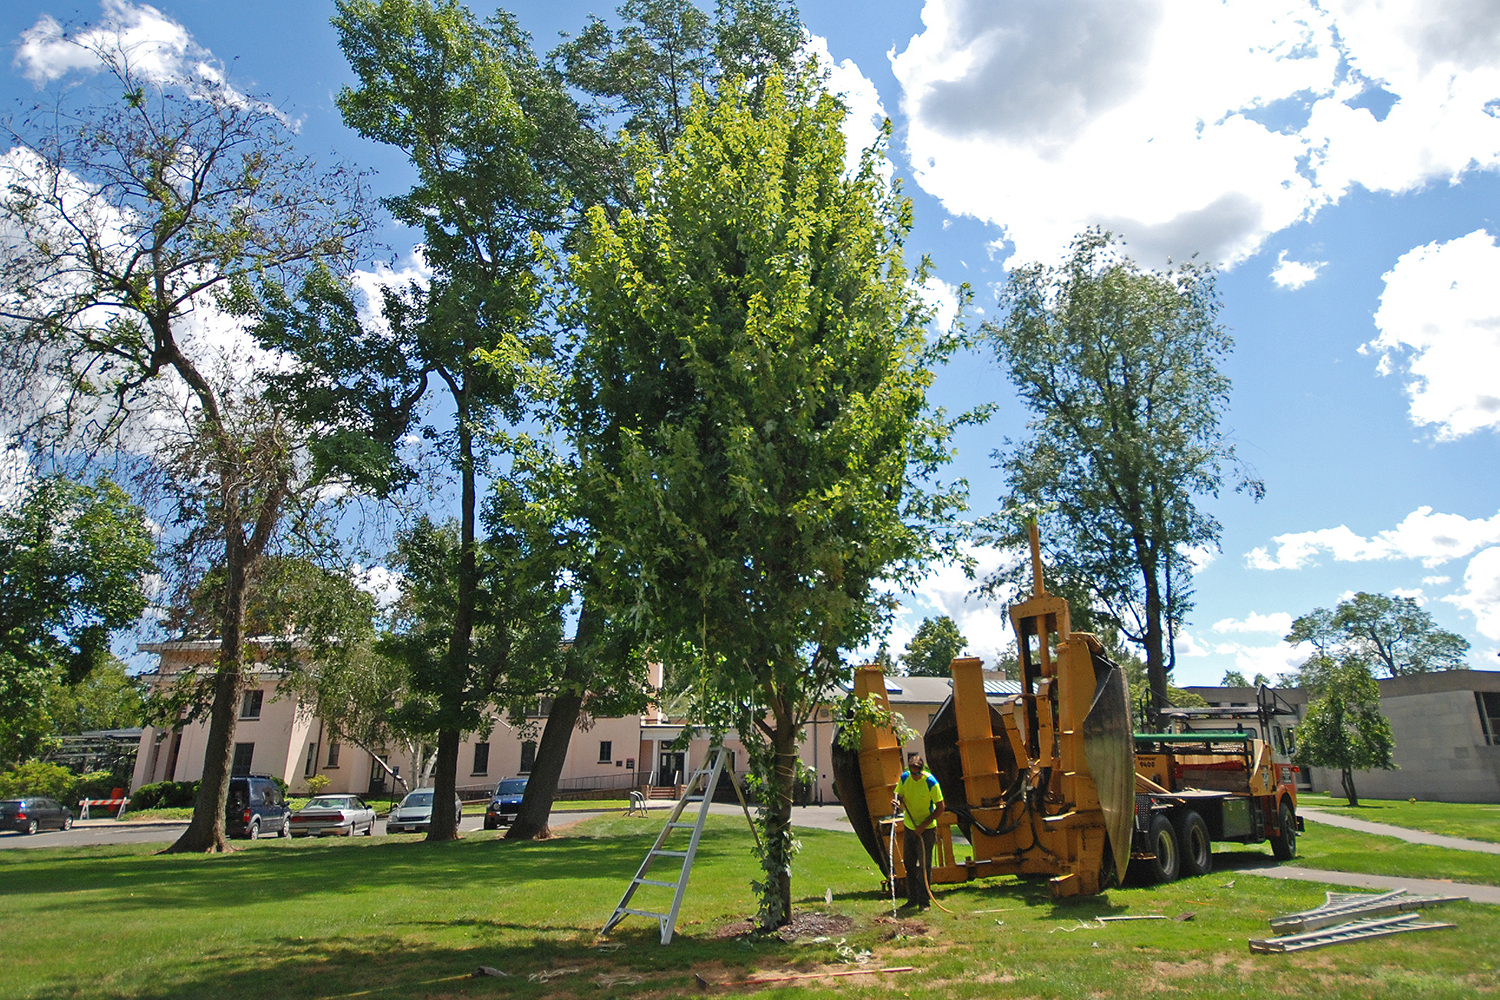 Crews Used A Mechanical Tree Spade To Transplant 20 Year Old Maple